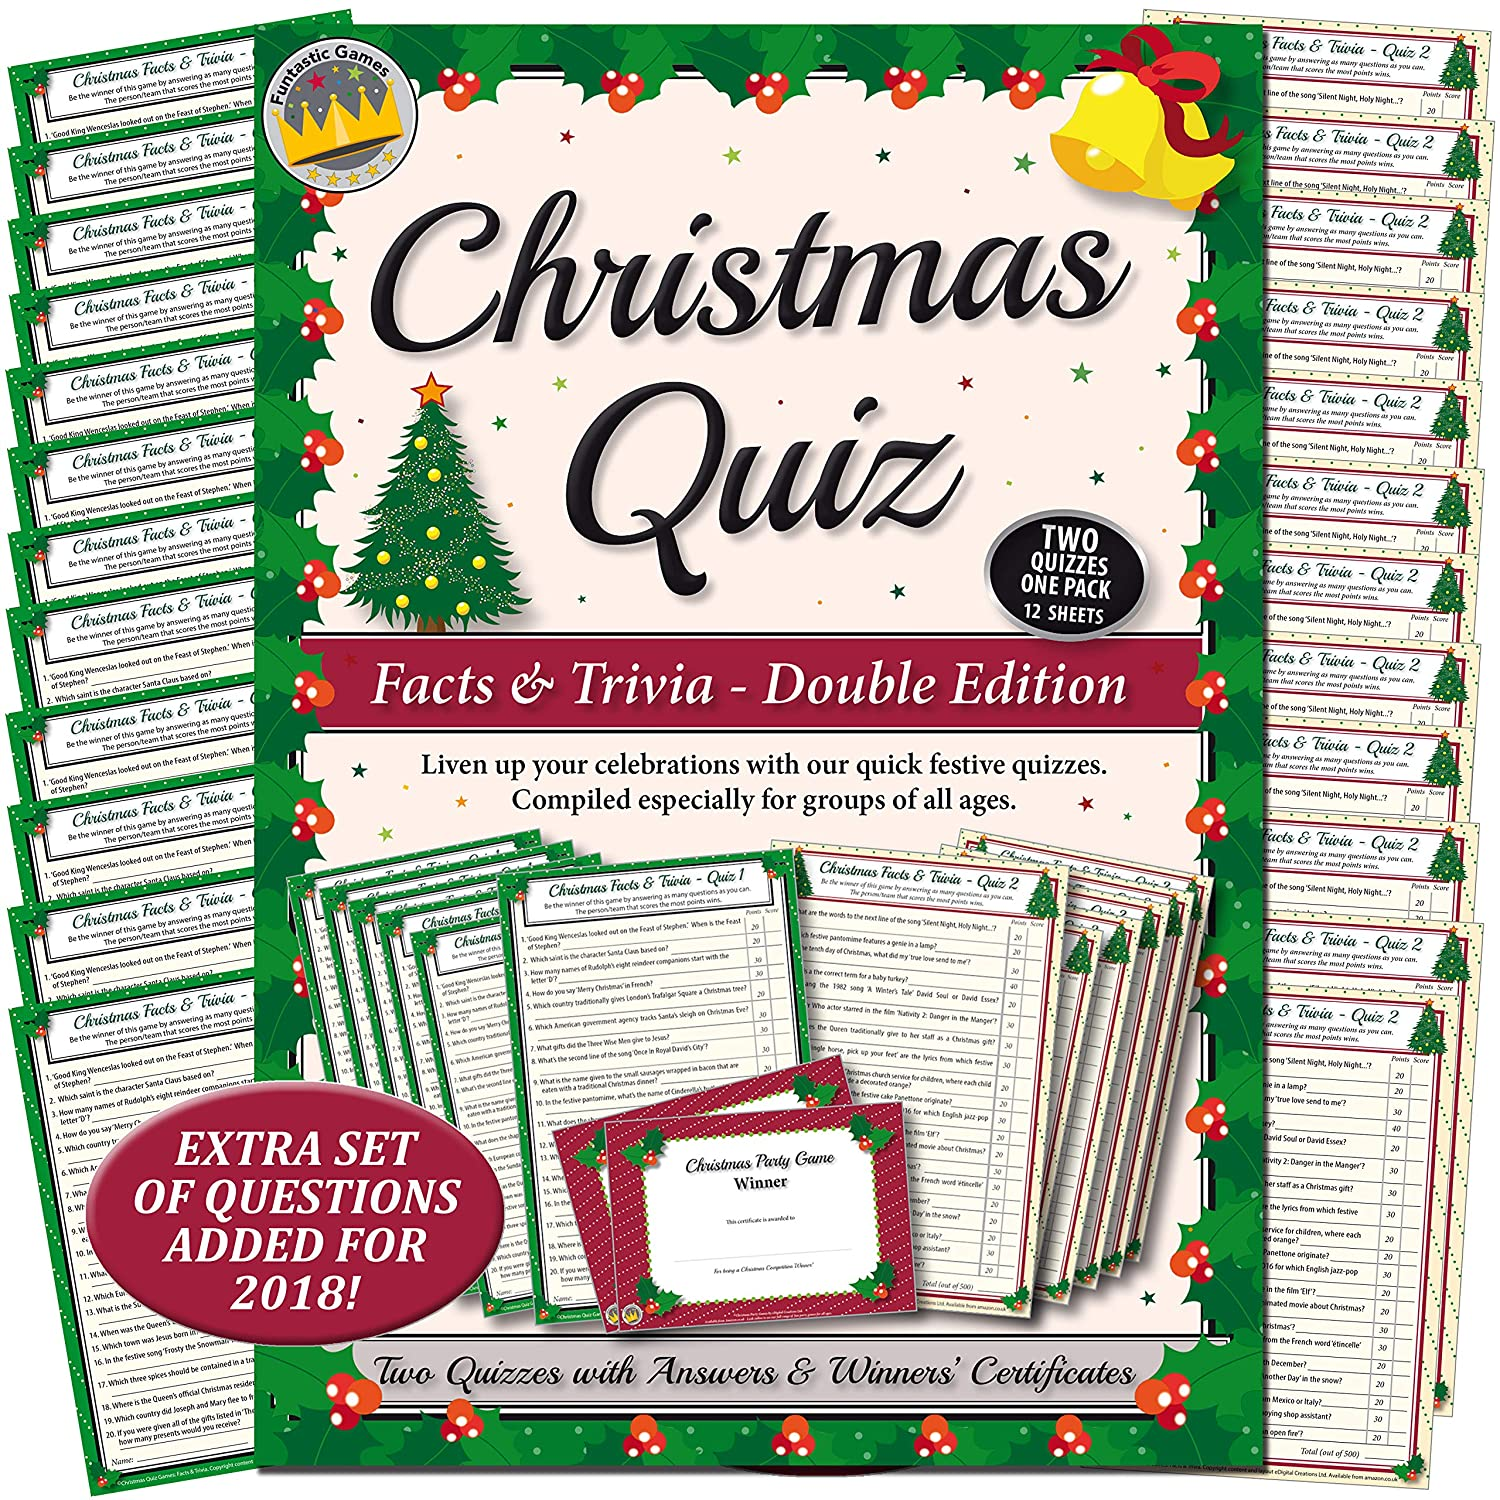 CHRISTMAS QUIZ GAMES: FACTS & TRIVIA PARTY GAME for Family, Office & Xmas parties eDigital Creations Ltd CQFT